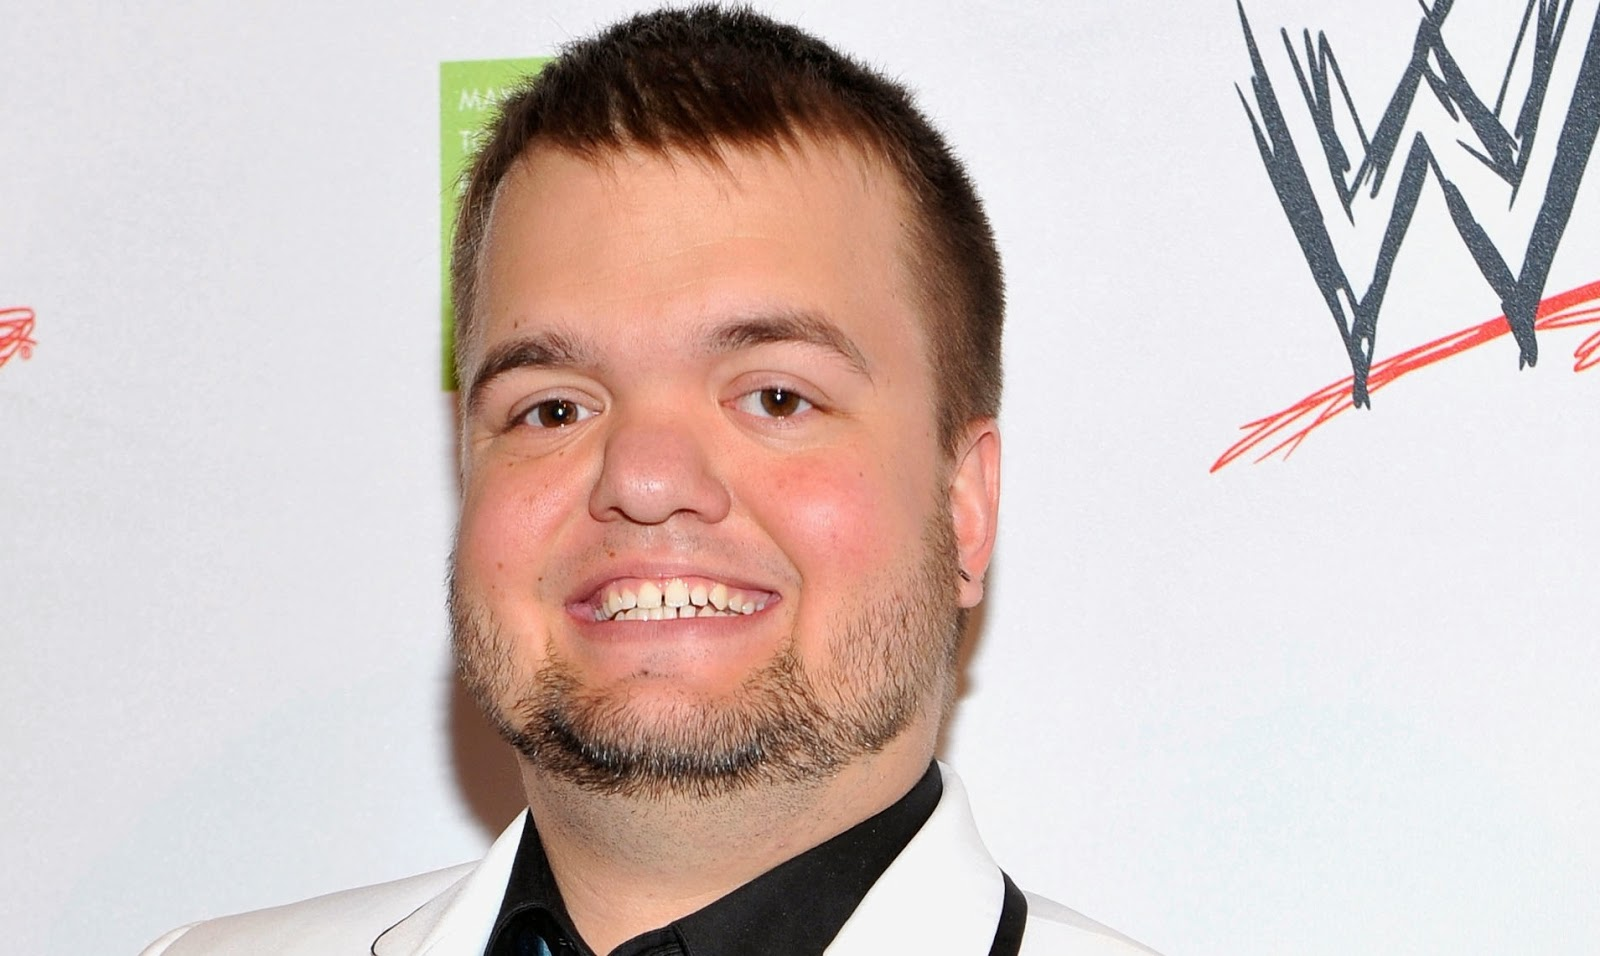 Hornswoggle Hd Wallpapers Free Download | WWE HD WALLPAPER ... Hornswoggle